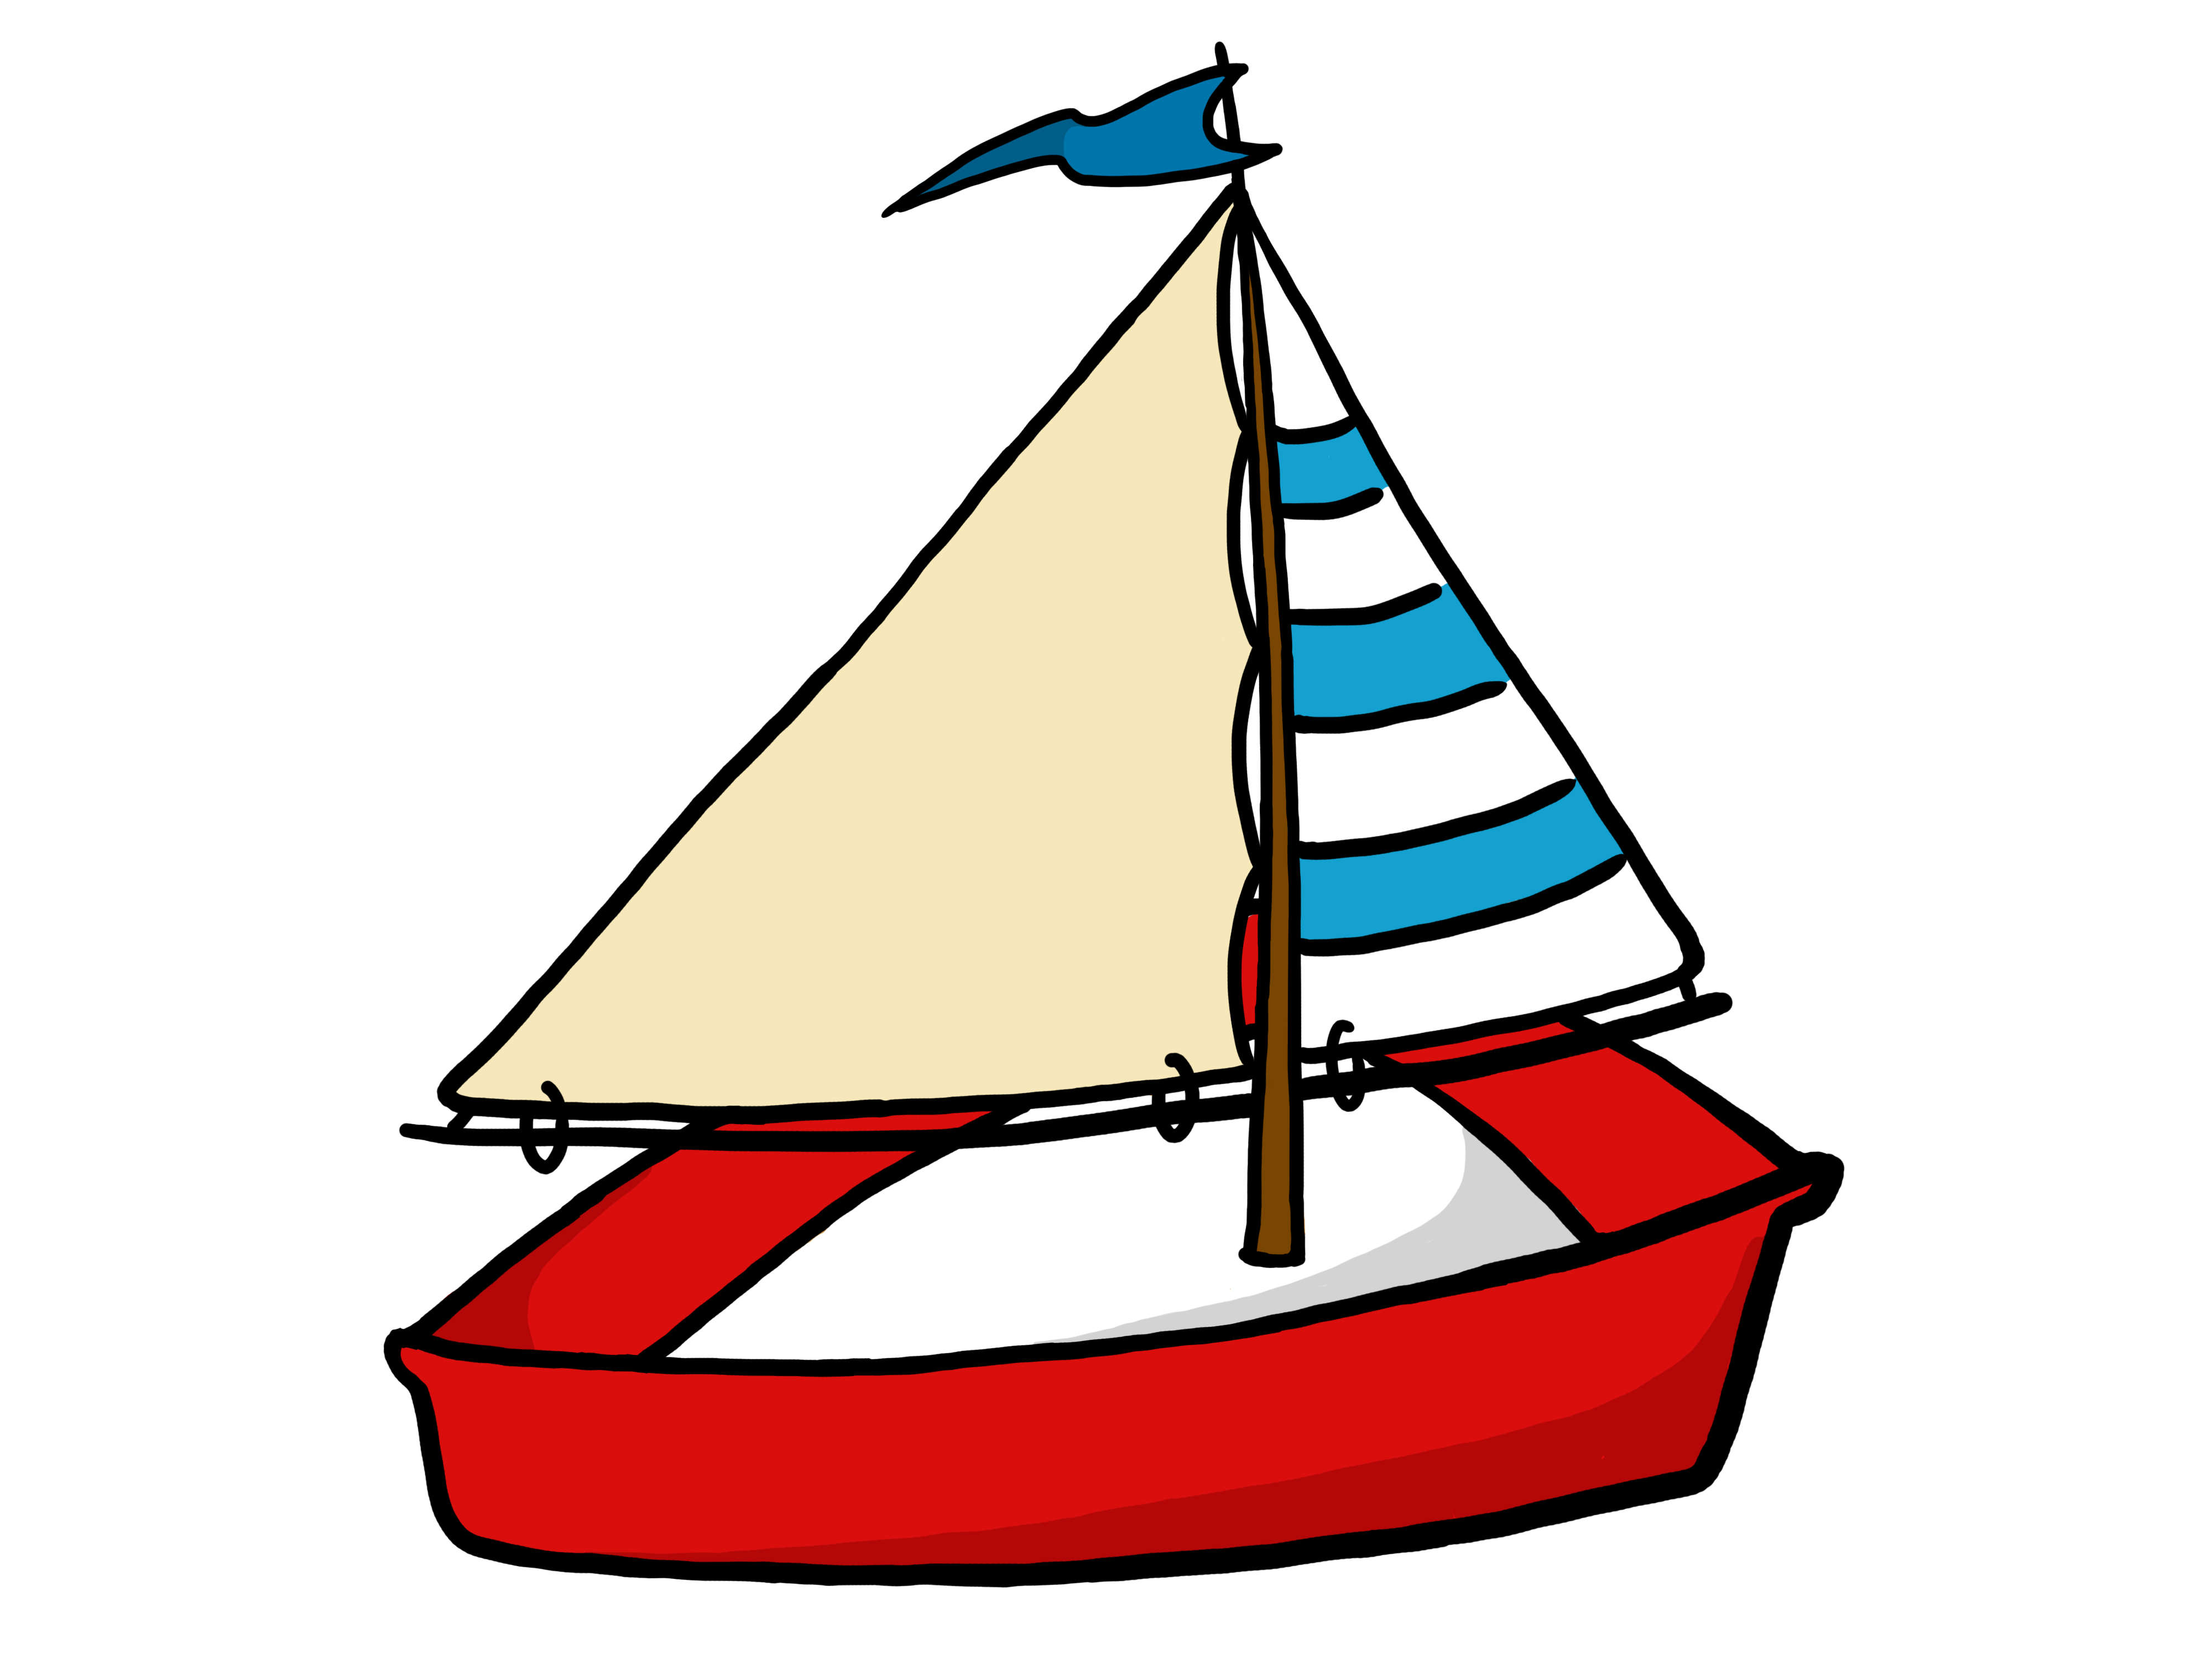 4000x3000 Boating Clipart Free Clipart Images